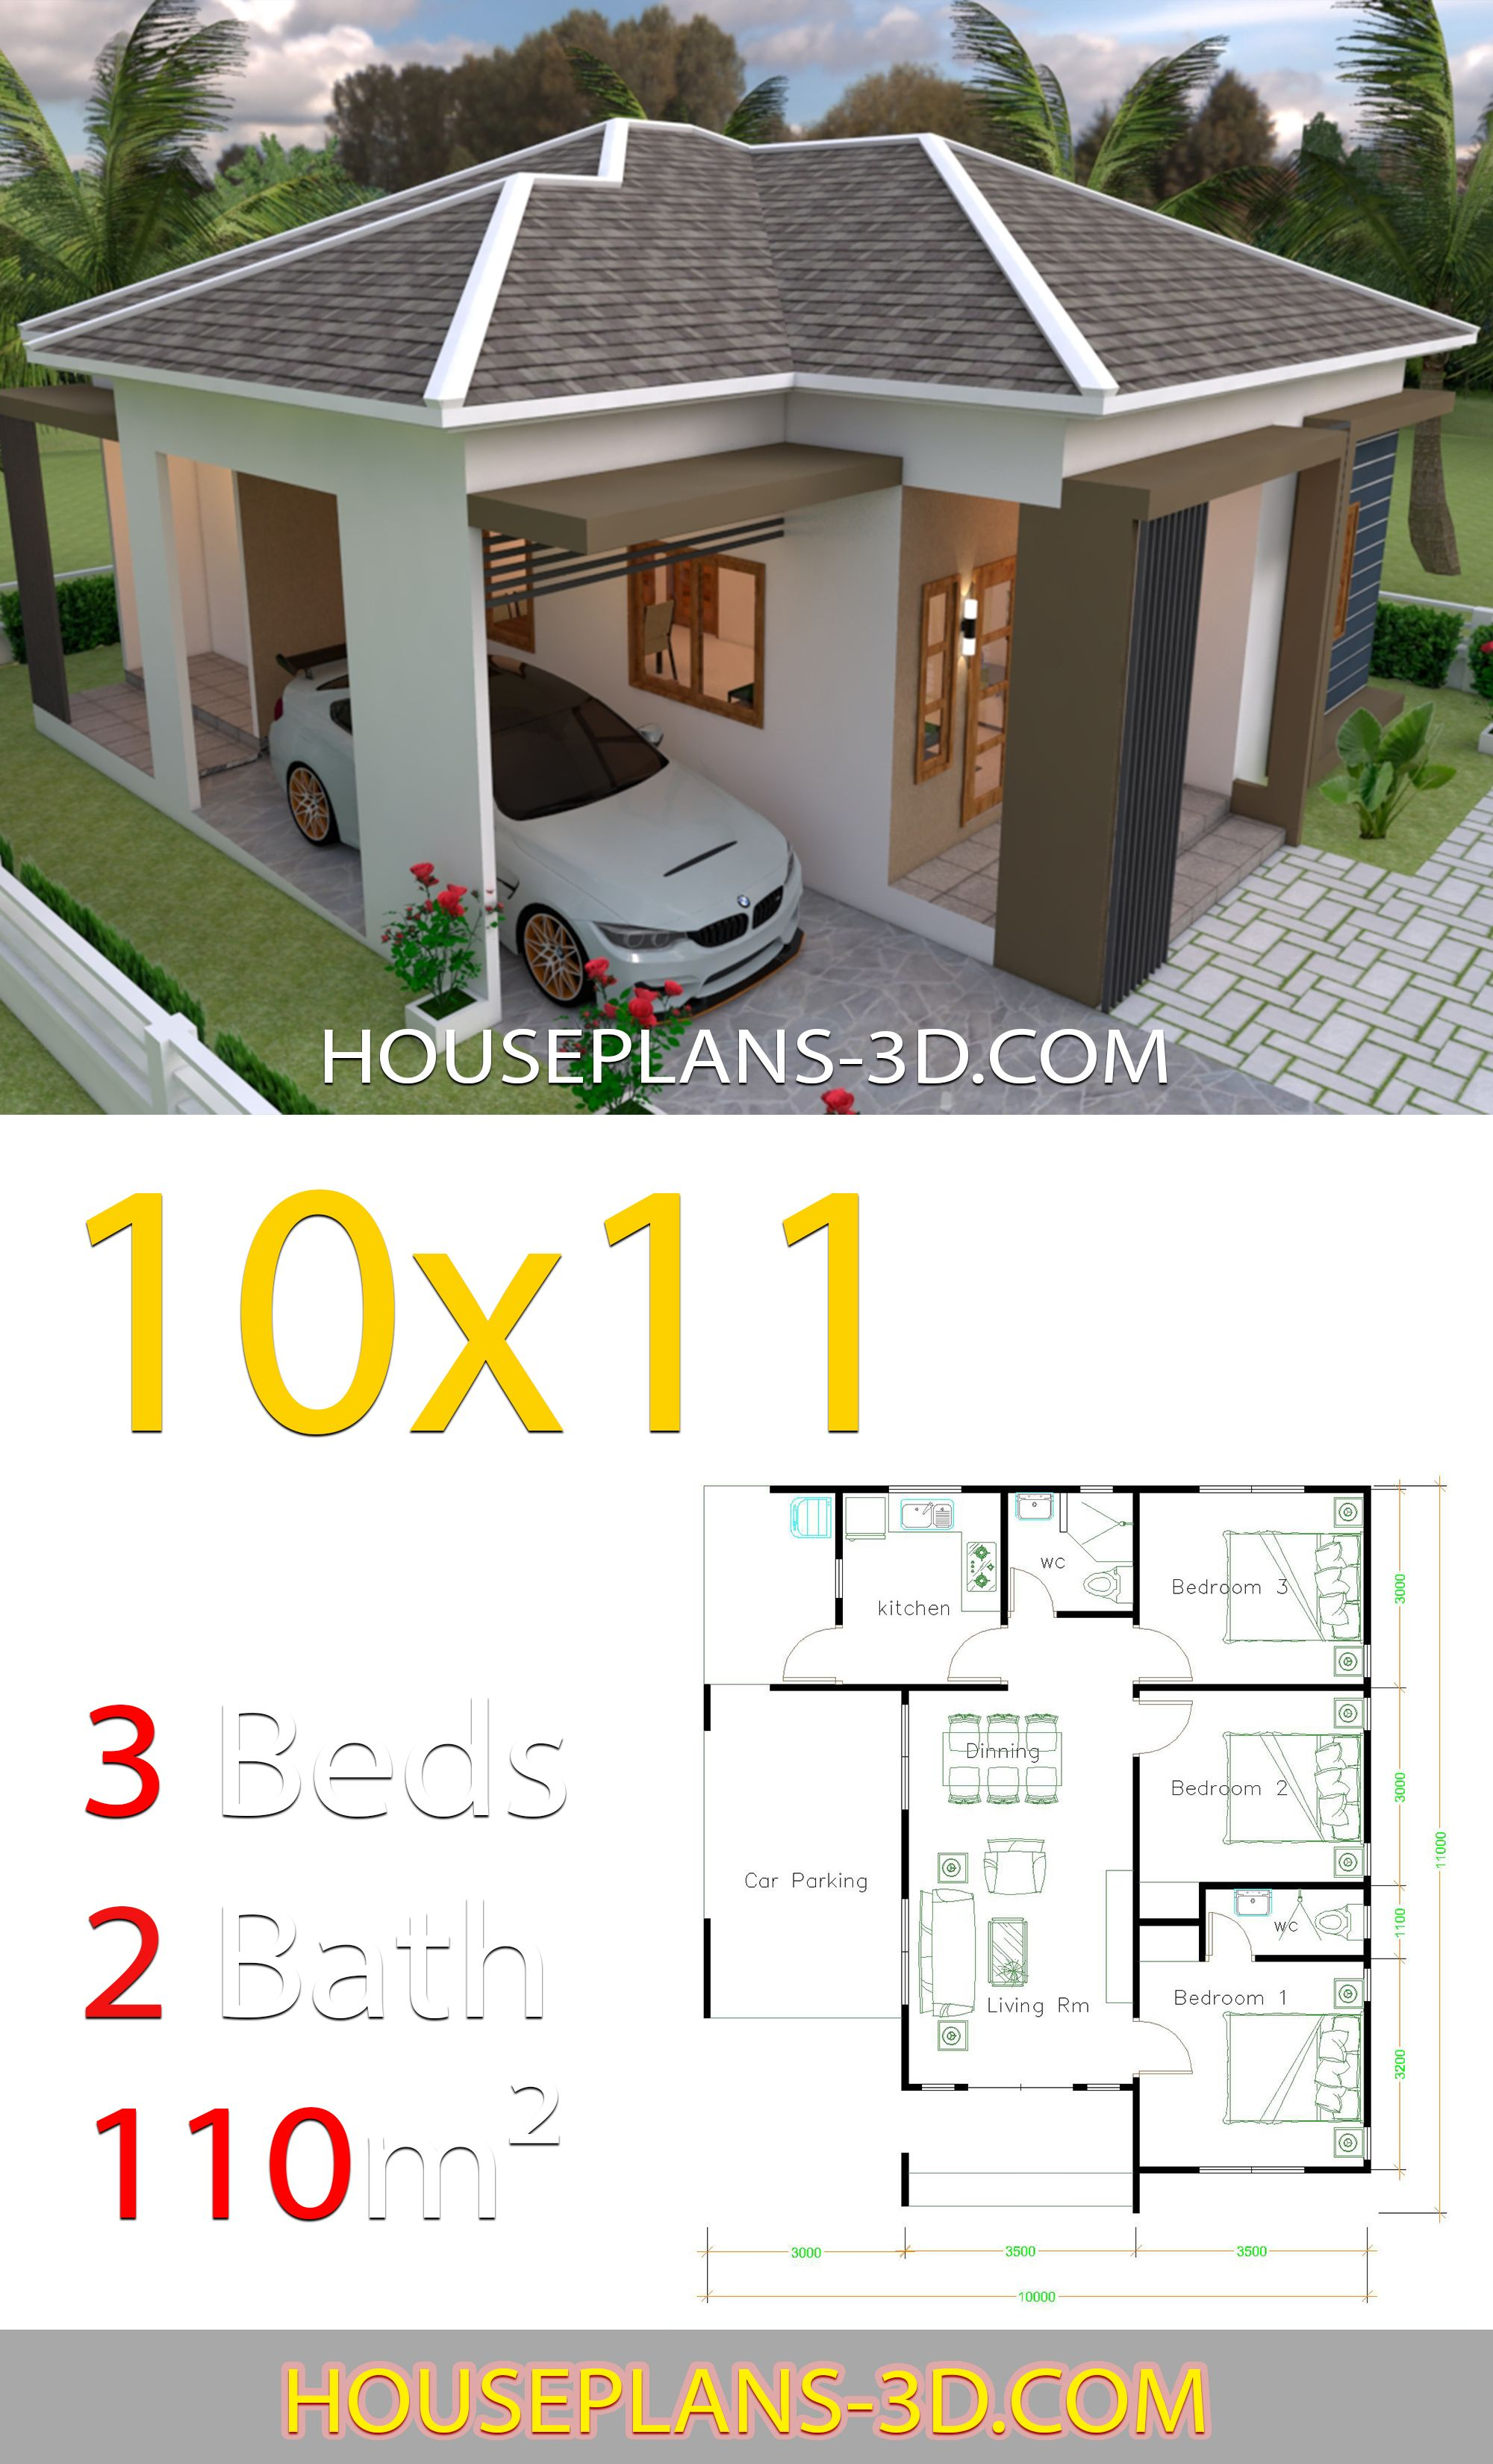 House Design 10x11 With 3 Bedrooms Hip Tiles House Plans 3d In 2020 Simple House Design House Construction Plan House Plans